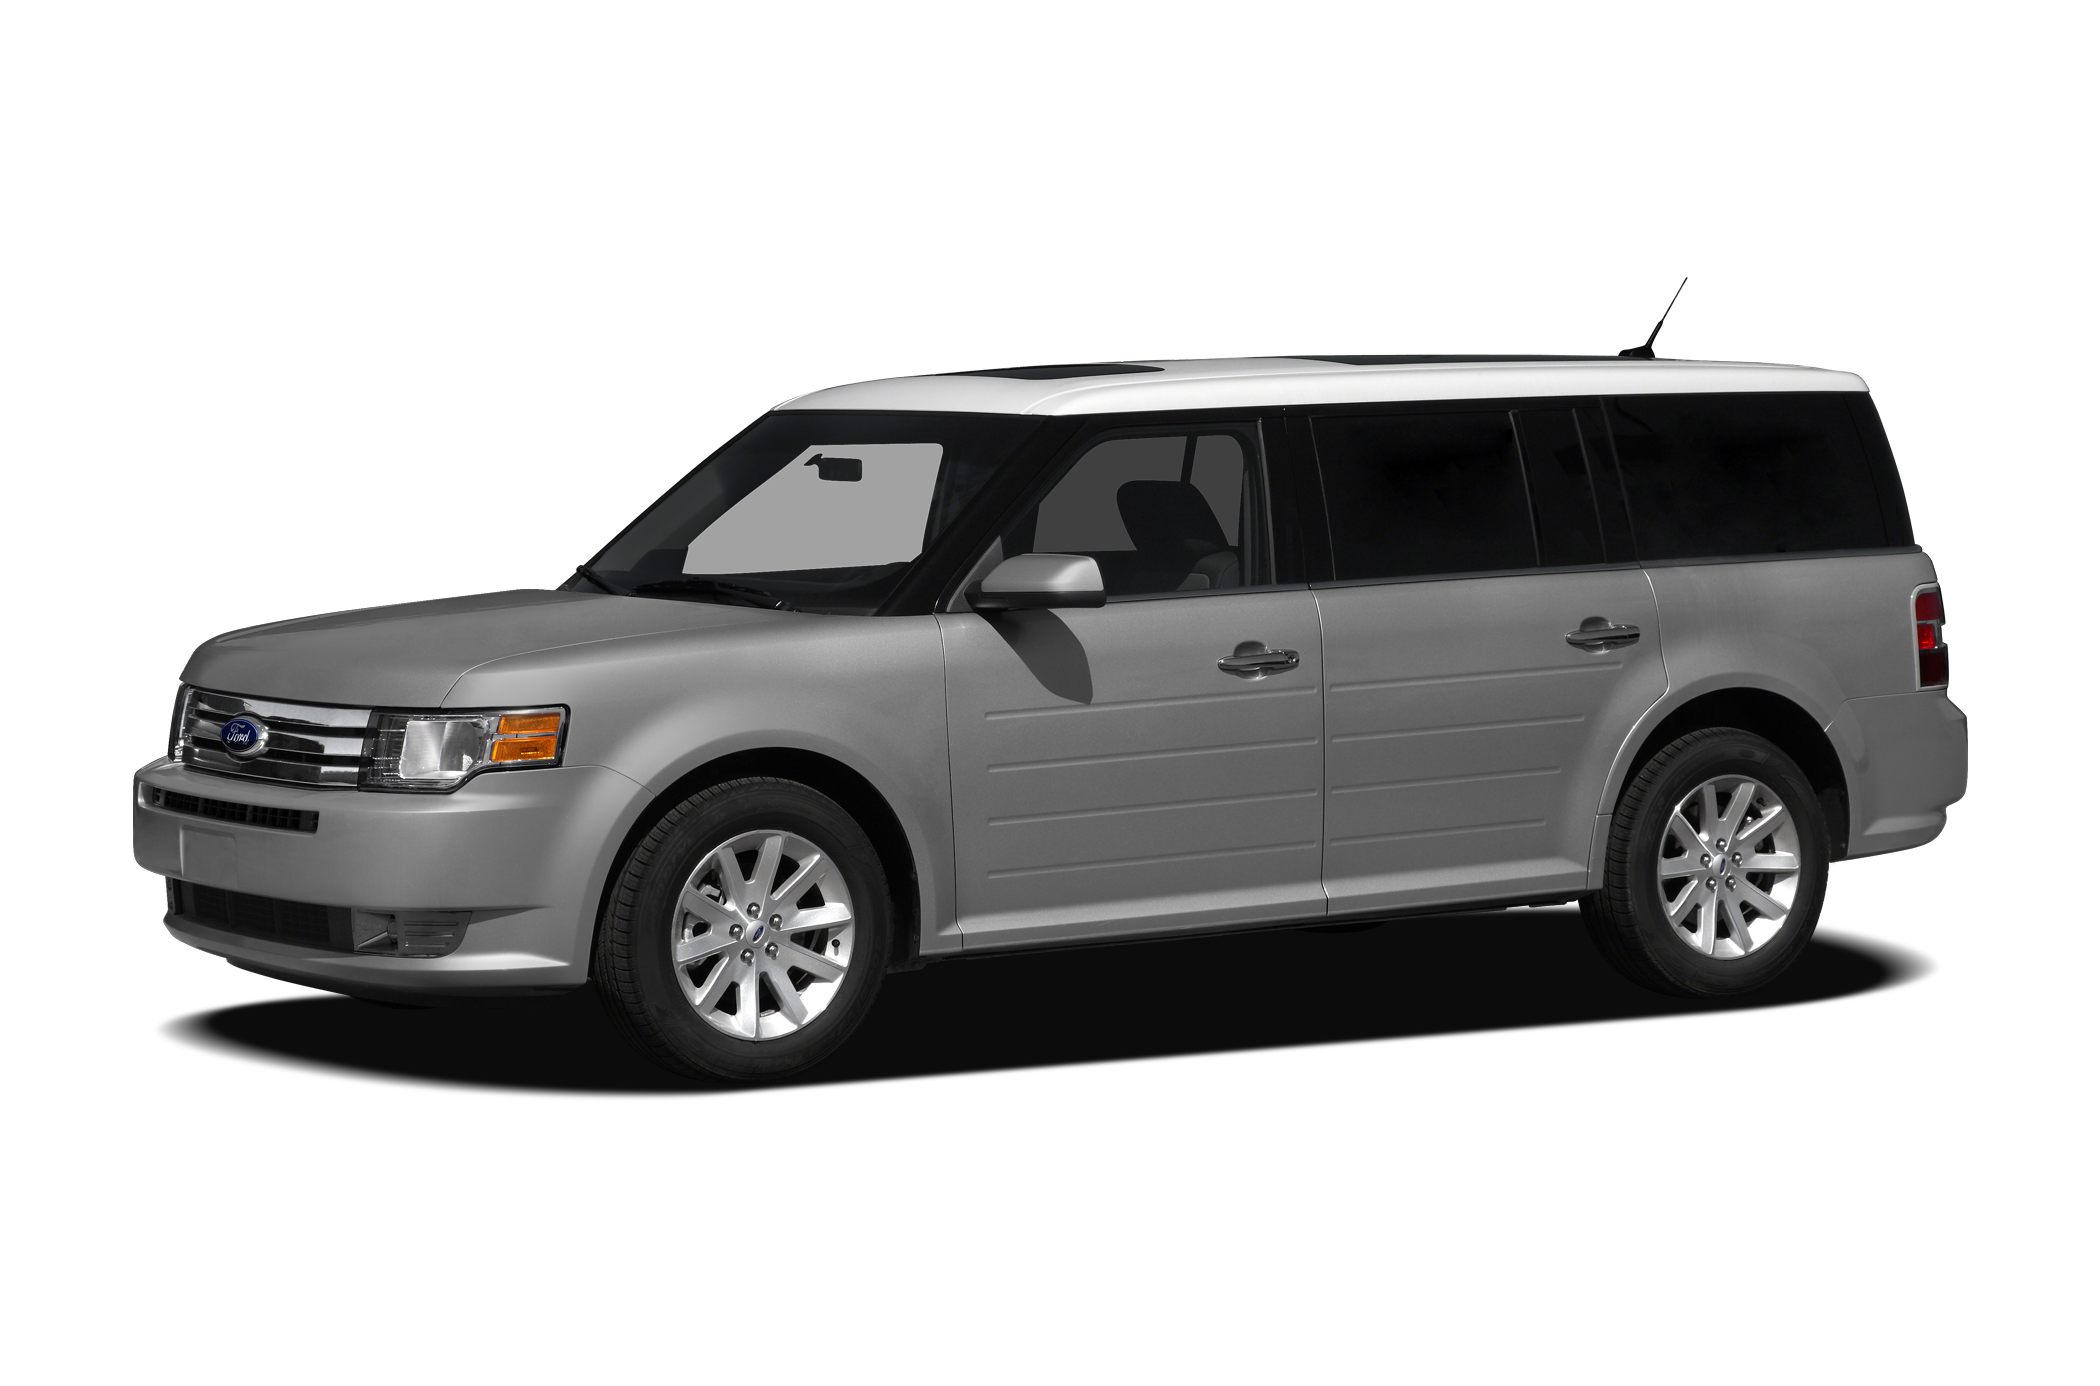 2012 Ford Flex Limited SUV for sale in Logan for $28,278 with 43,736 miles